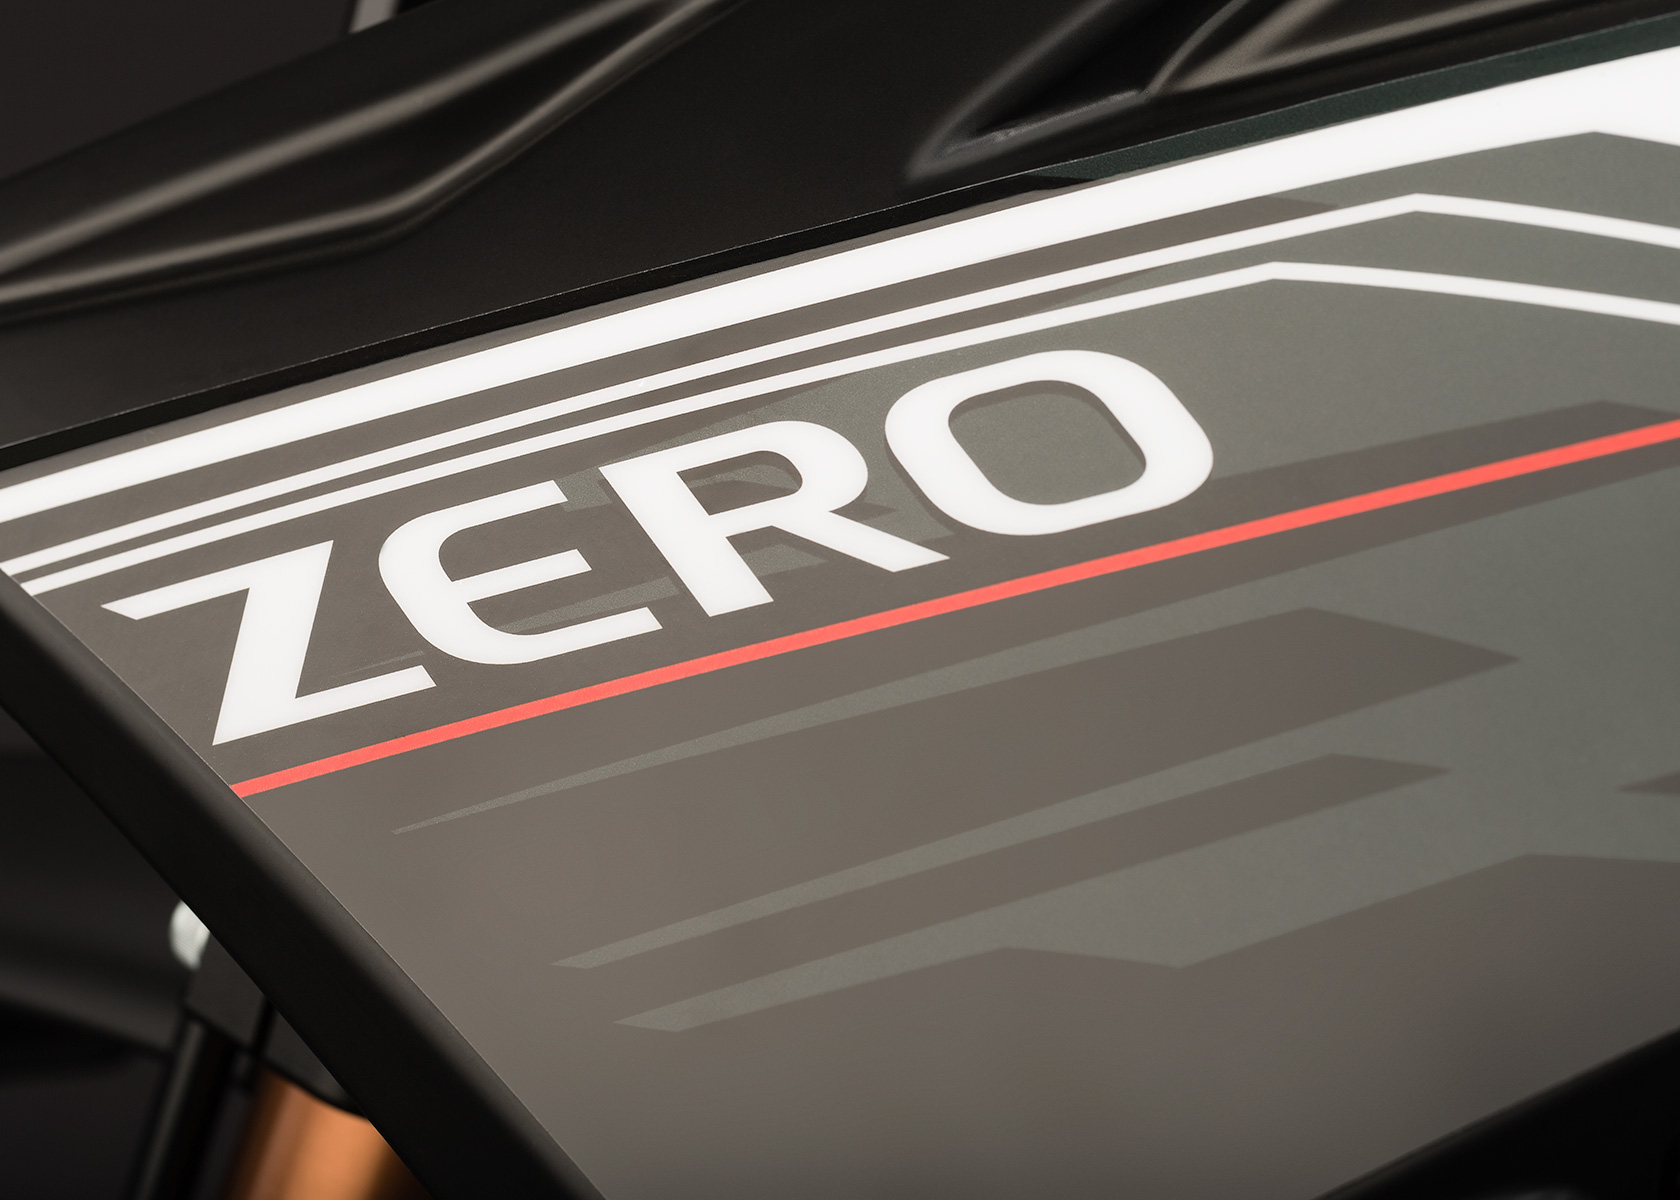 2013 Zero MX Electric Motorcycle: Graphic